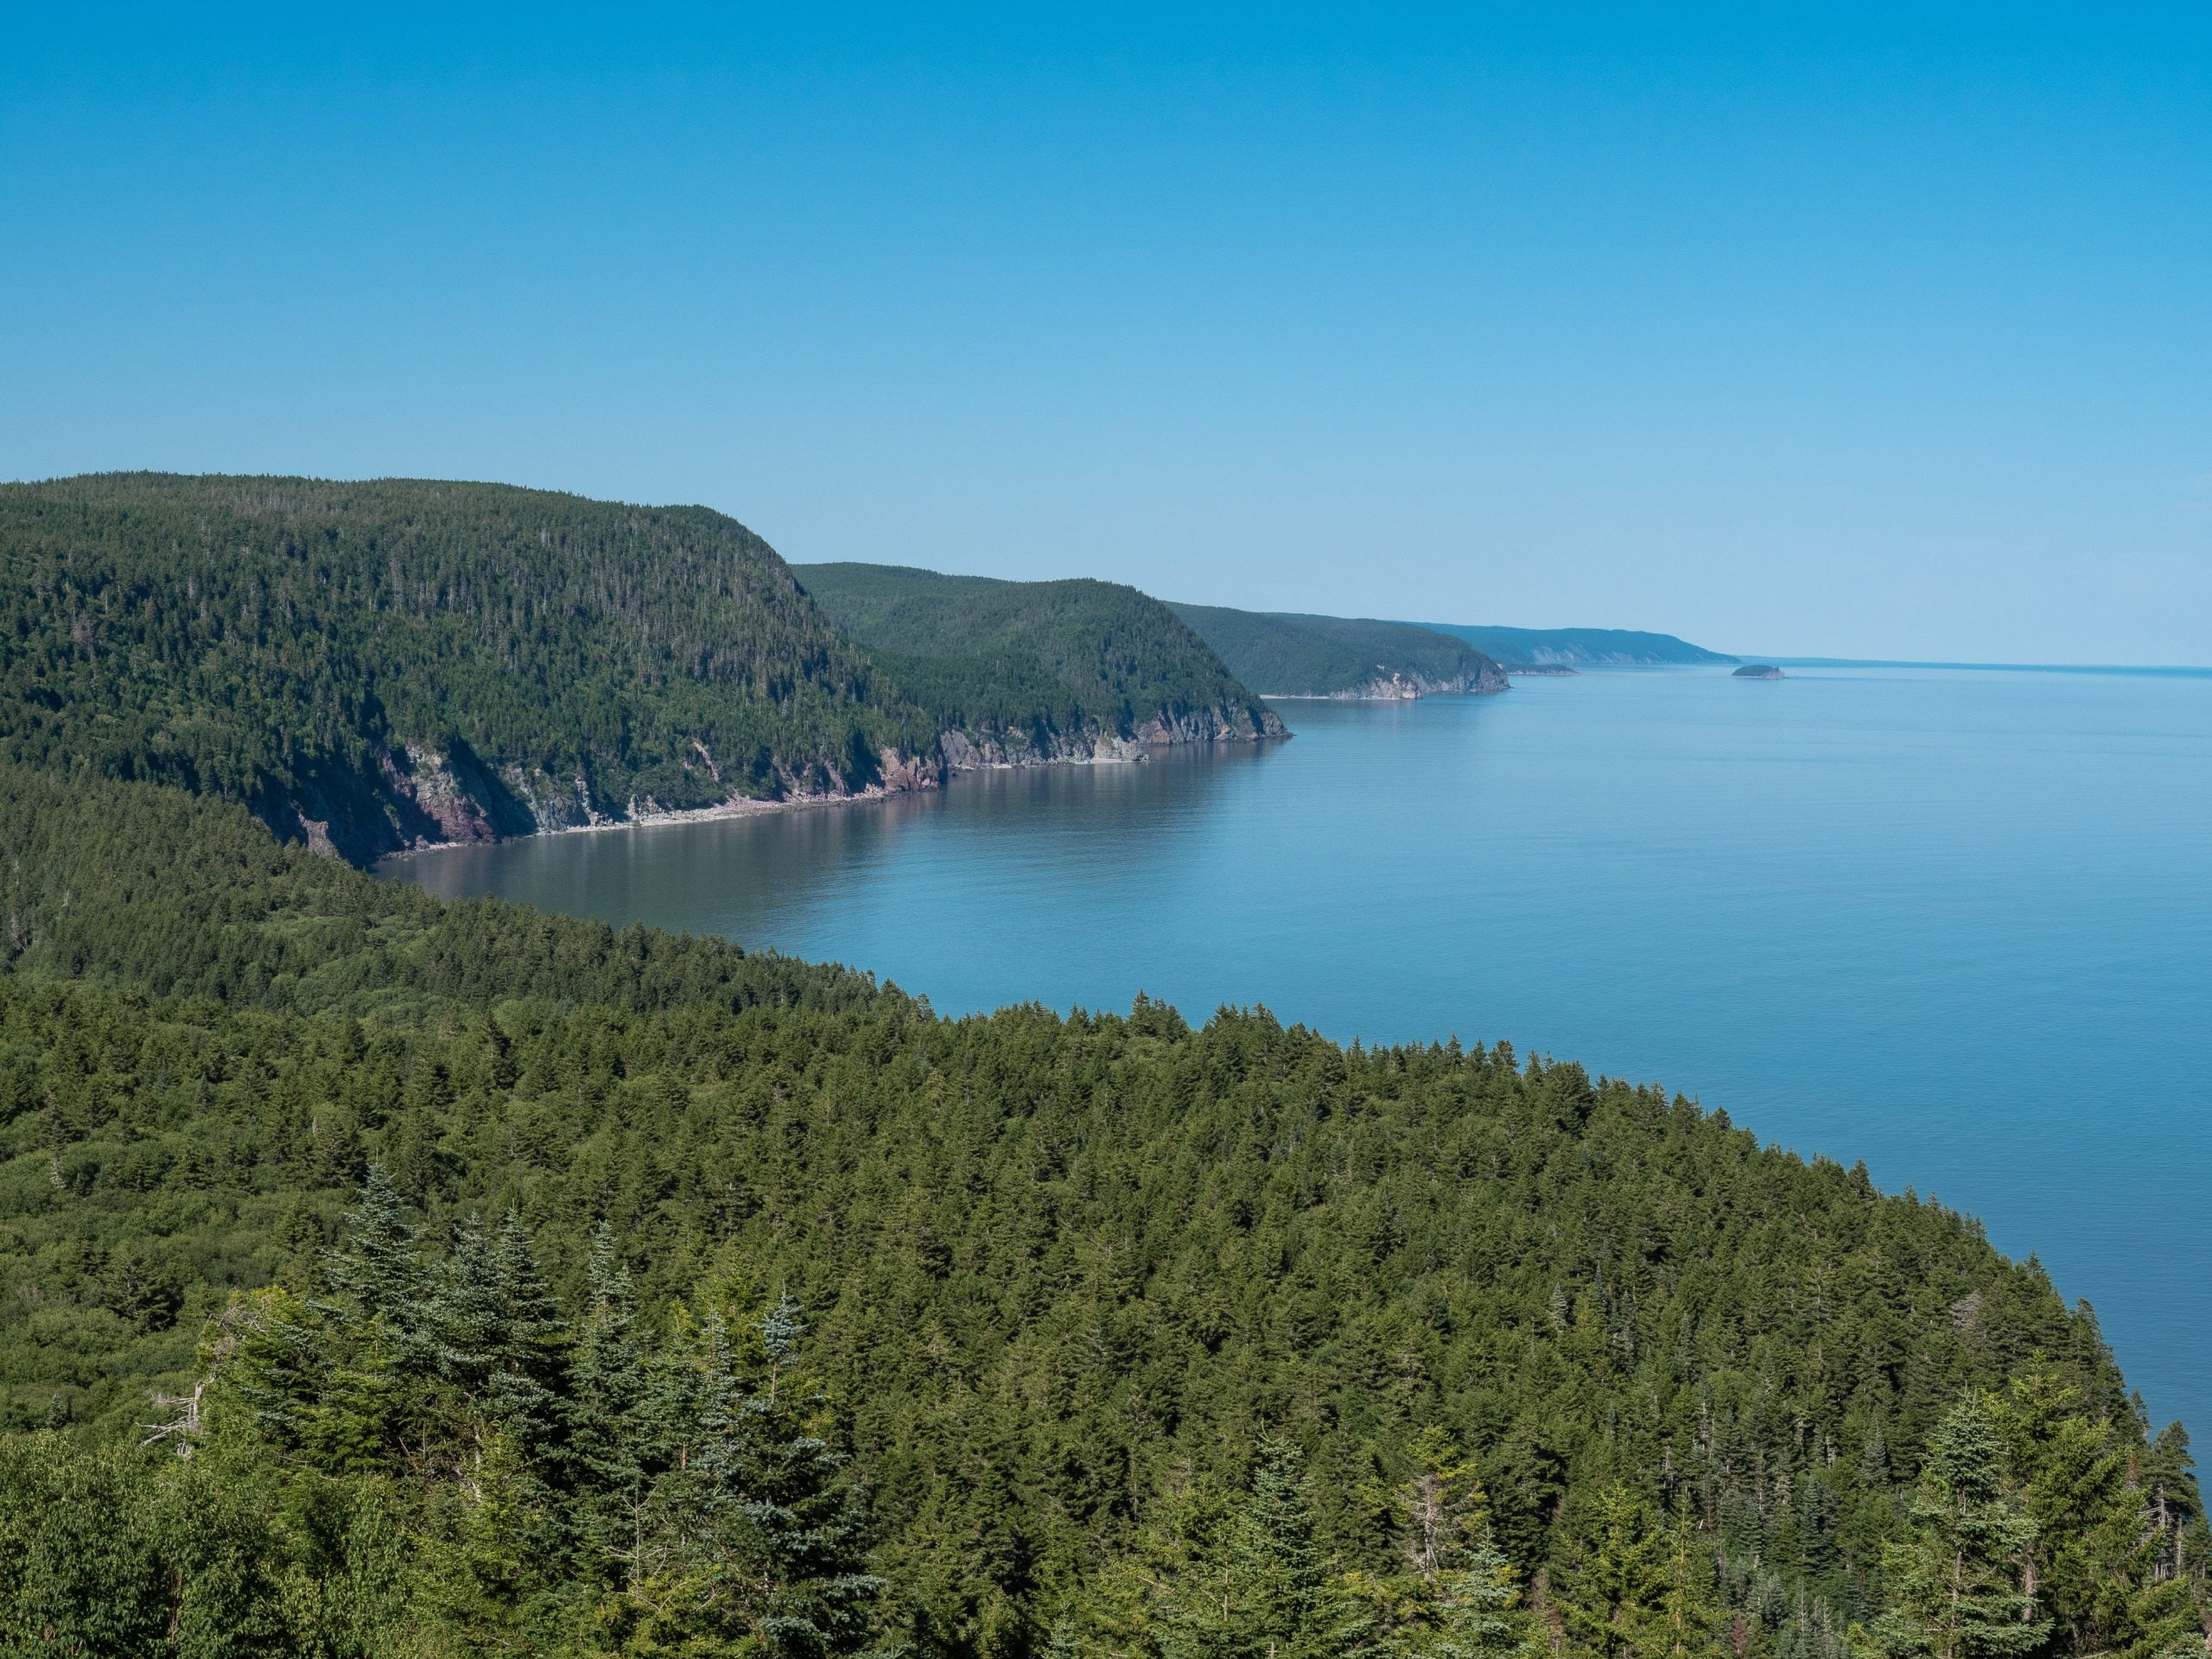 sentier fundy 4 1 scaled - Les globe blogueurs - blog voyage nature